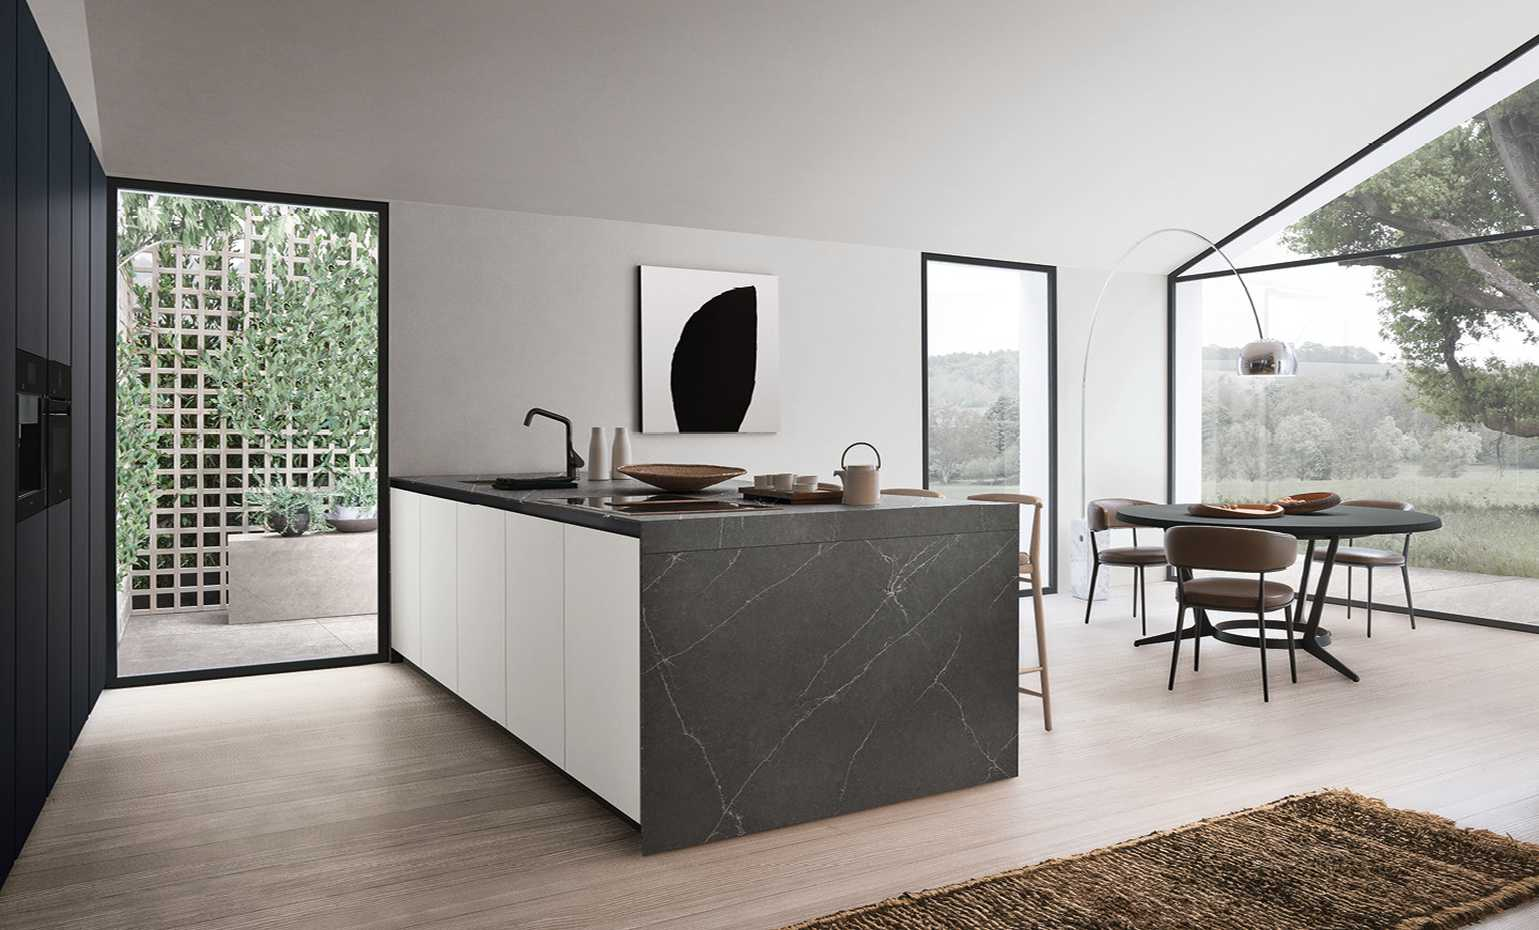 Thea by Arclinea product image 1